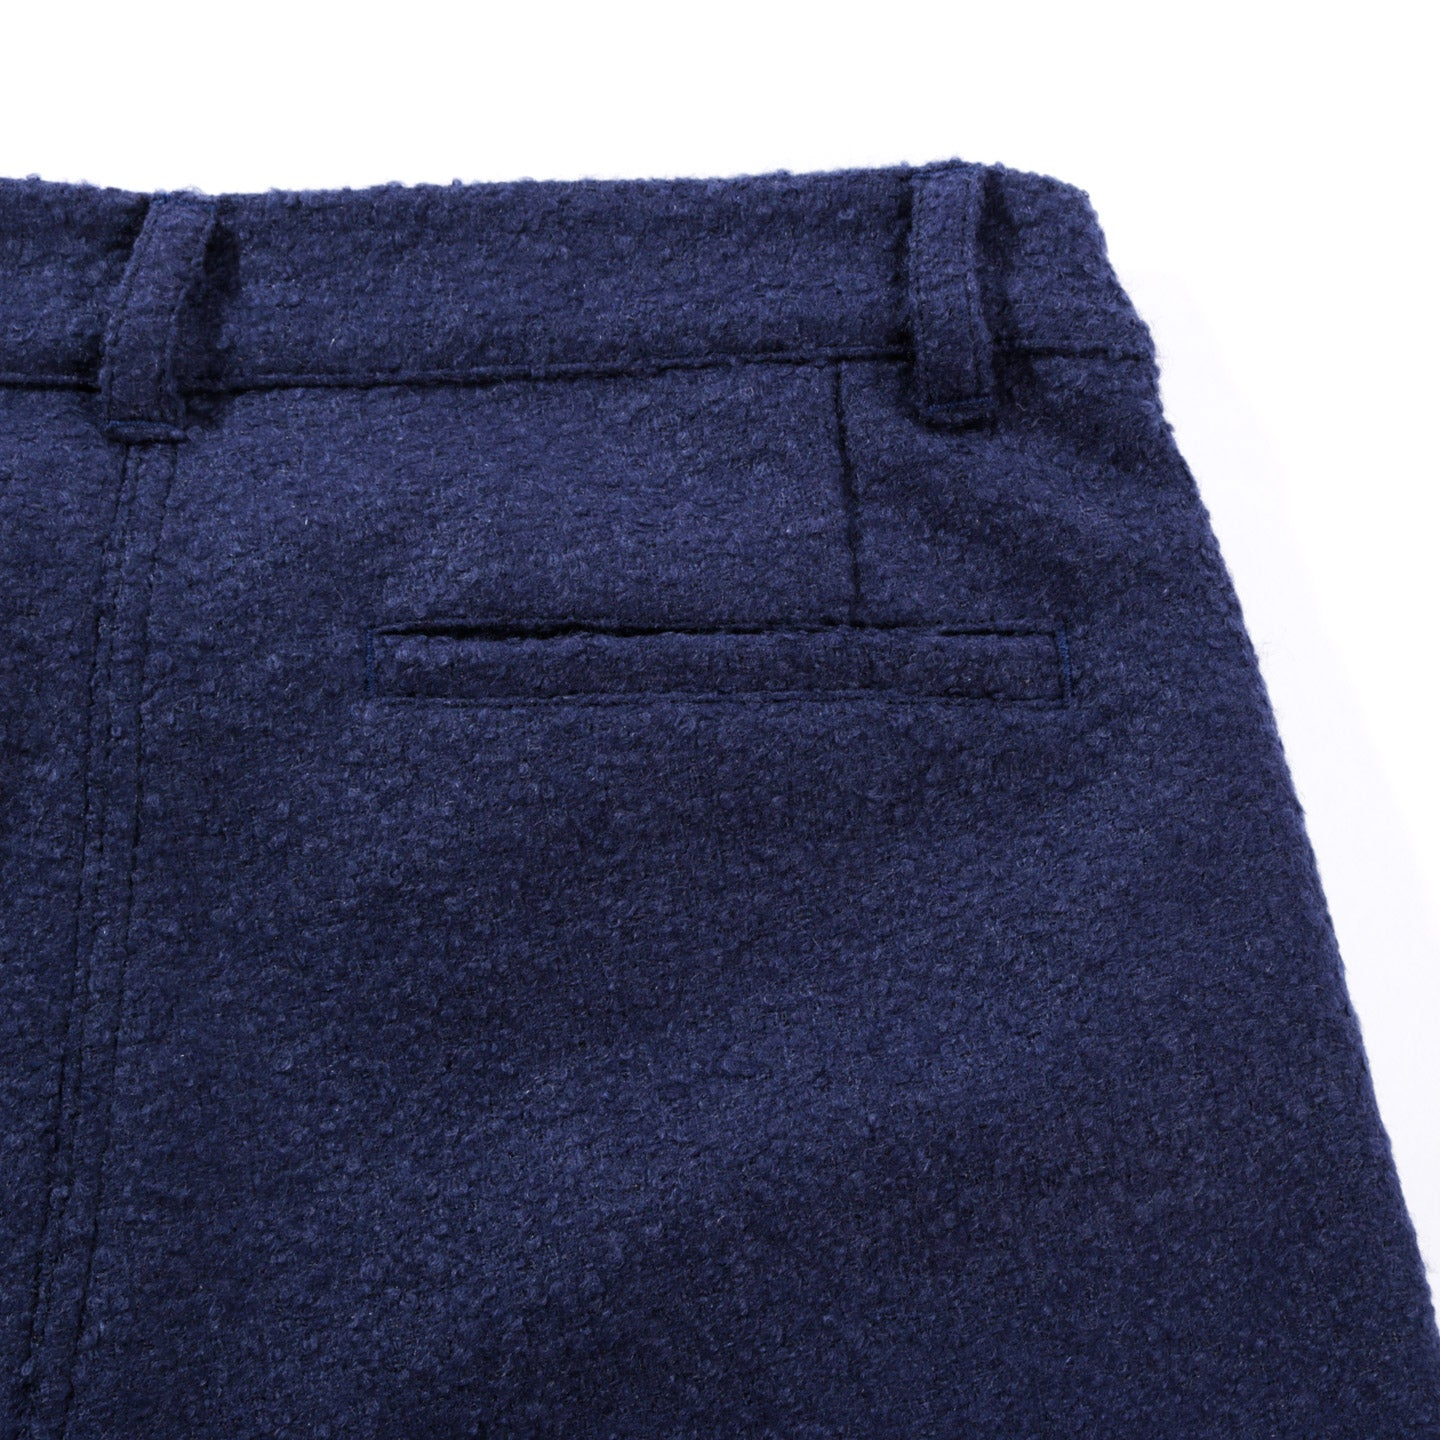 HOUSE OF ST. CLAIR SINGLE PLEAT TROUSER NAVY BOILED WOOL